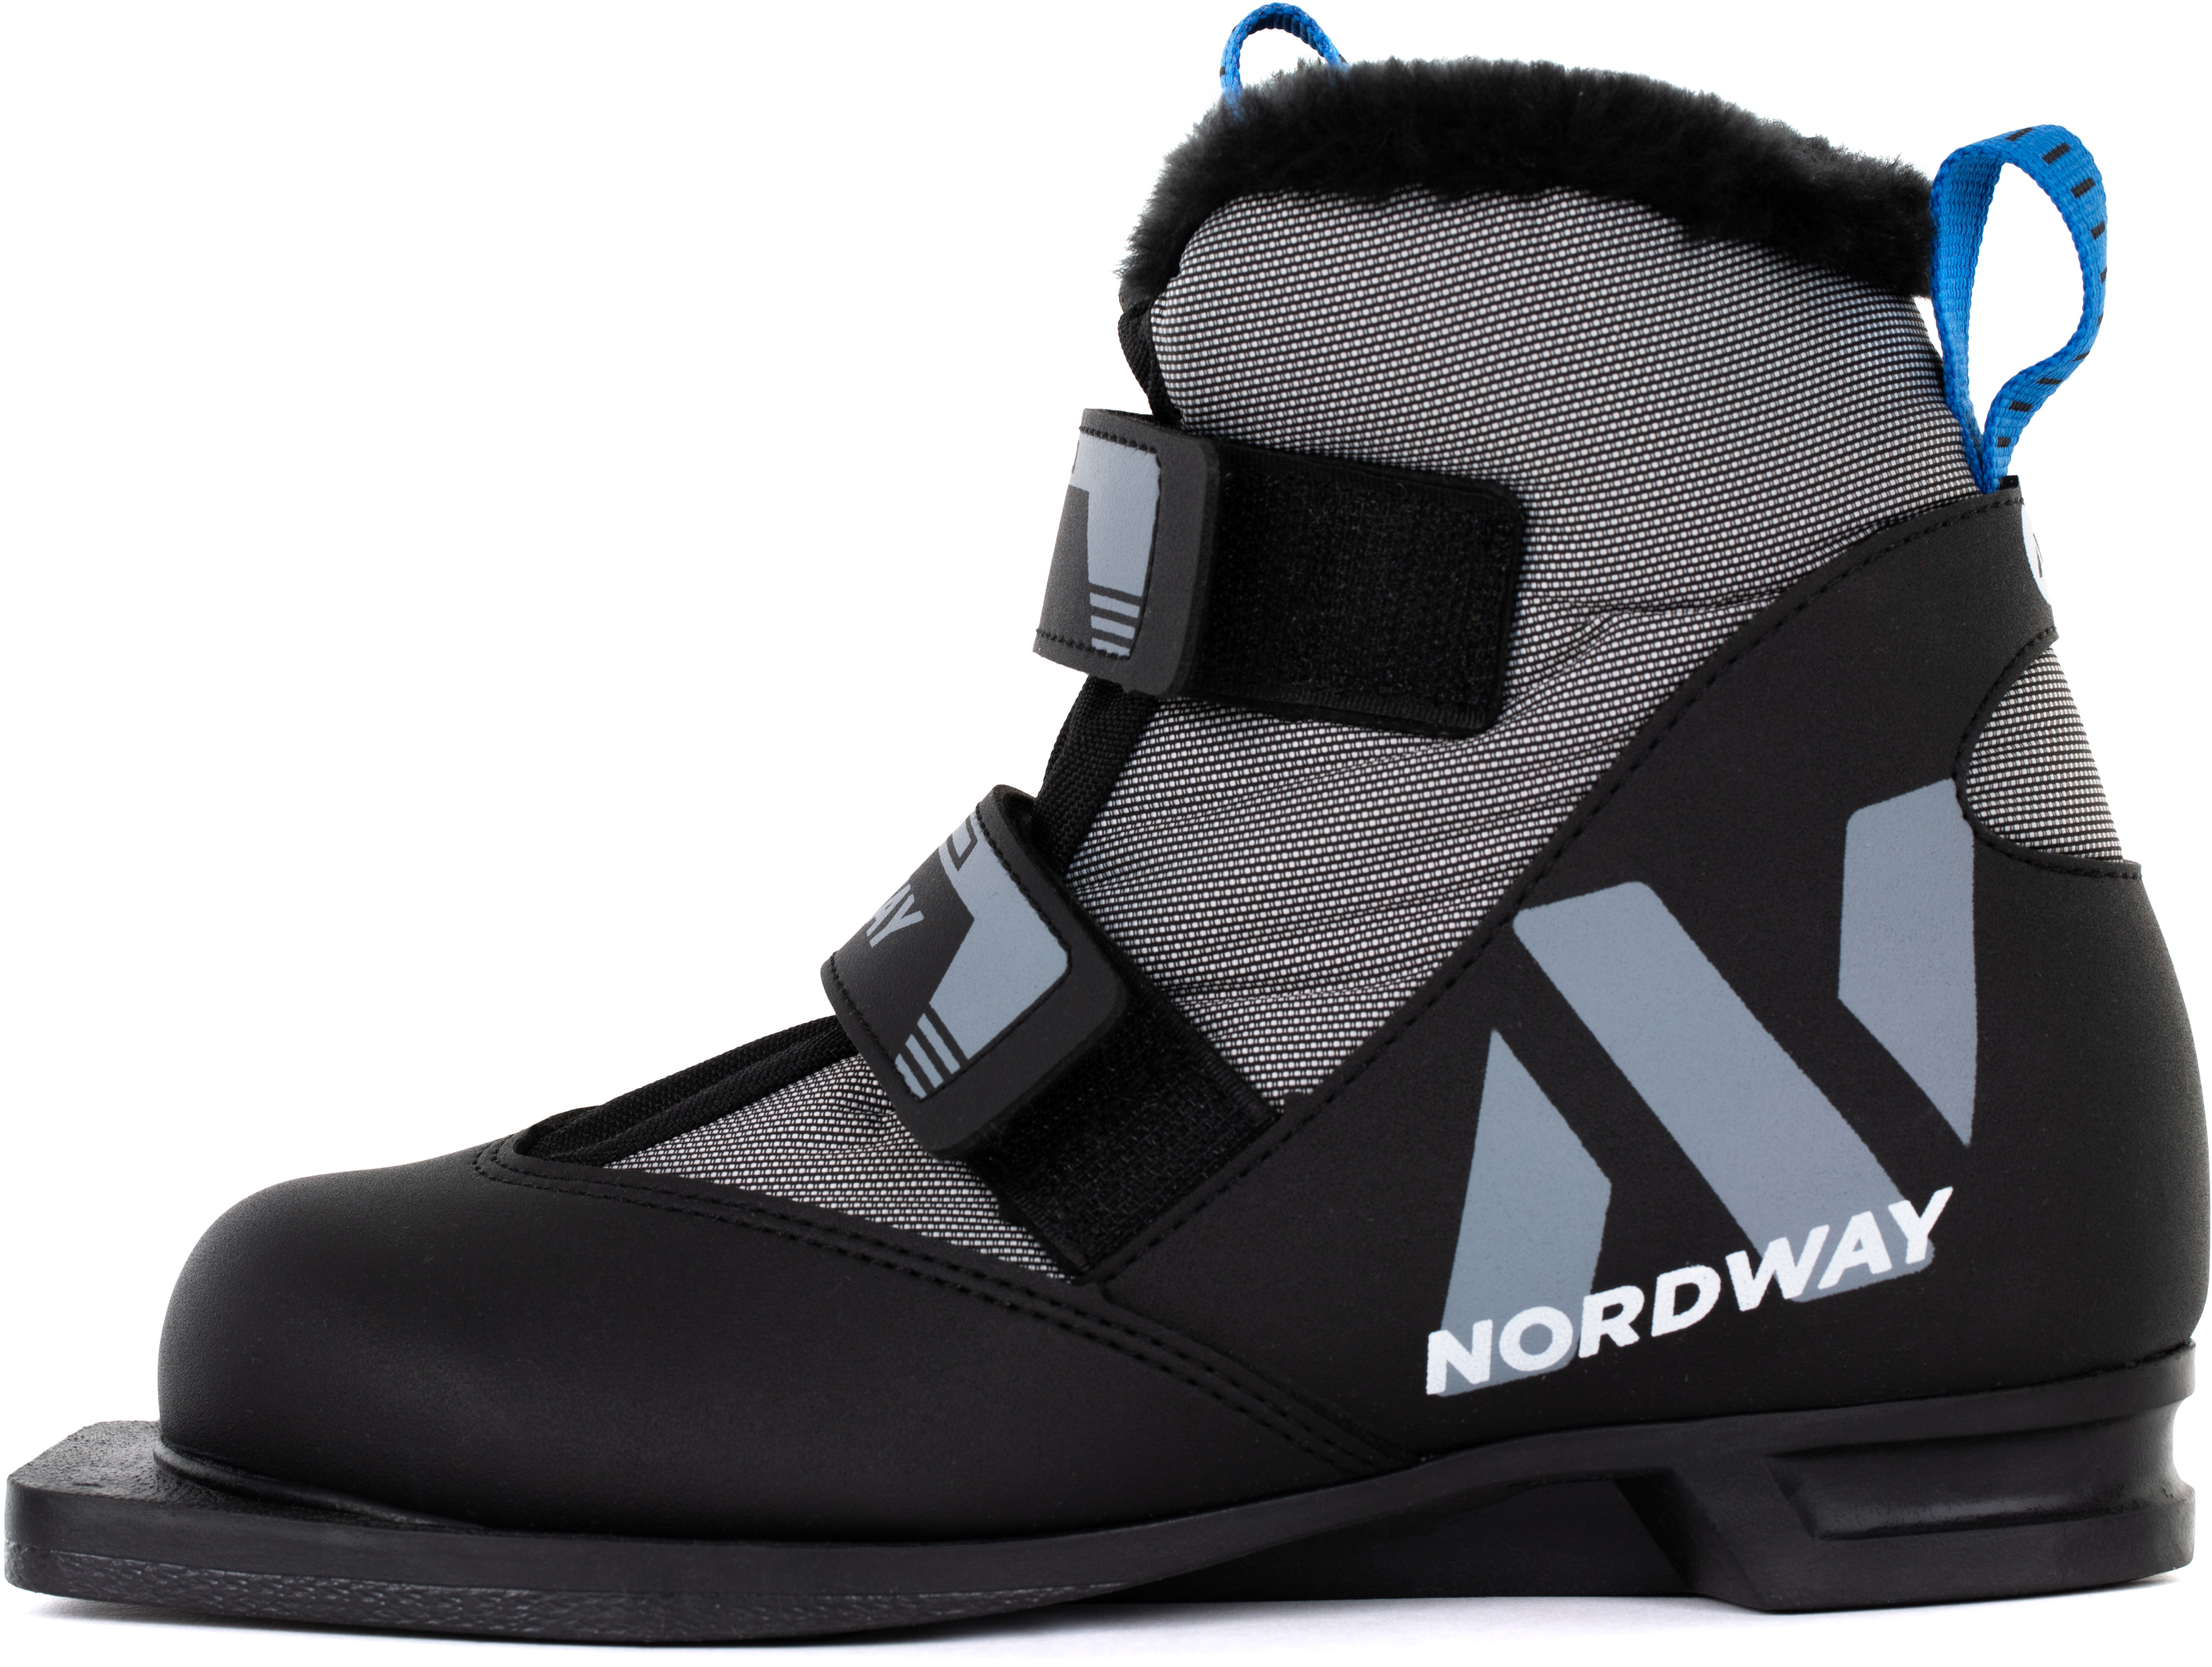 Nordway Polar 75mm Kids cross-country ski boots, размер 37